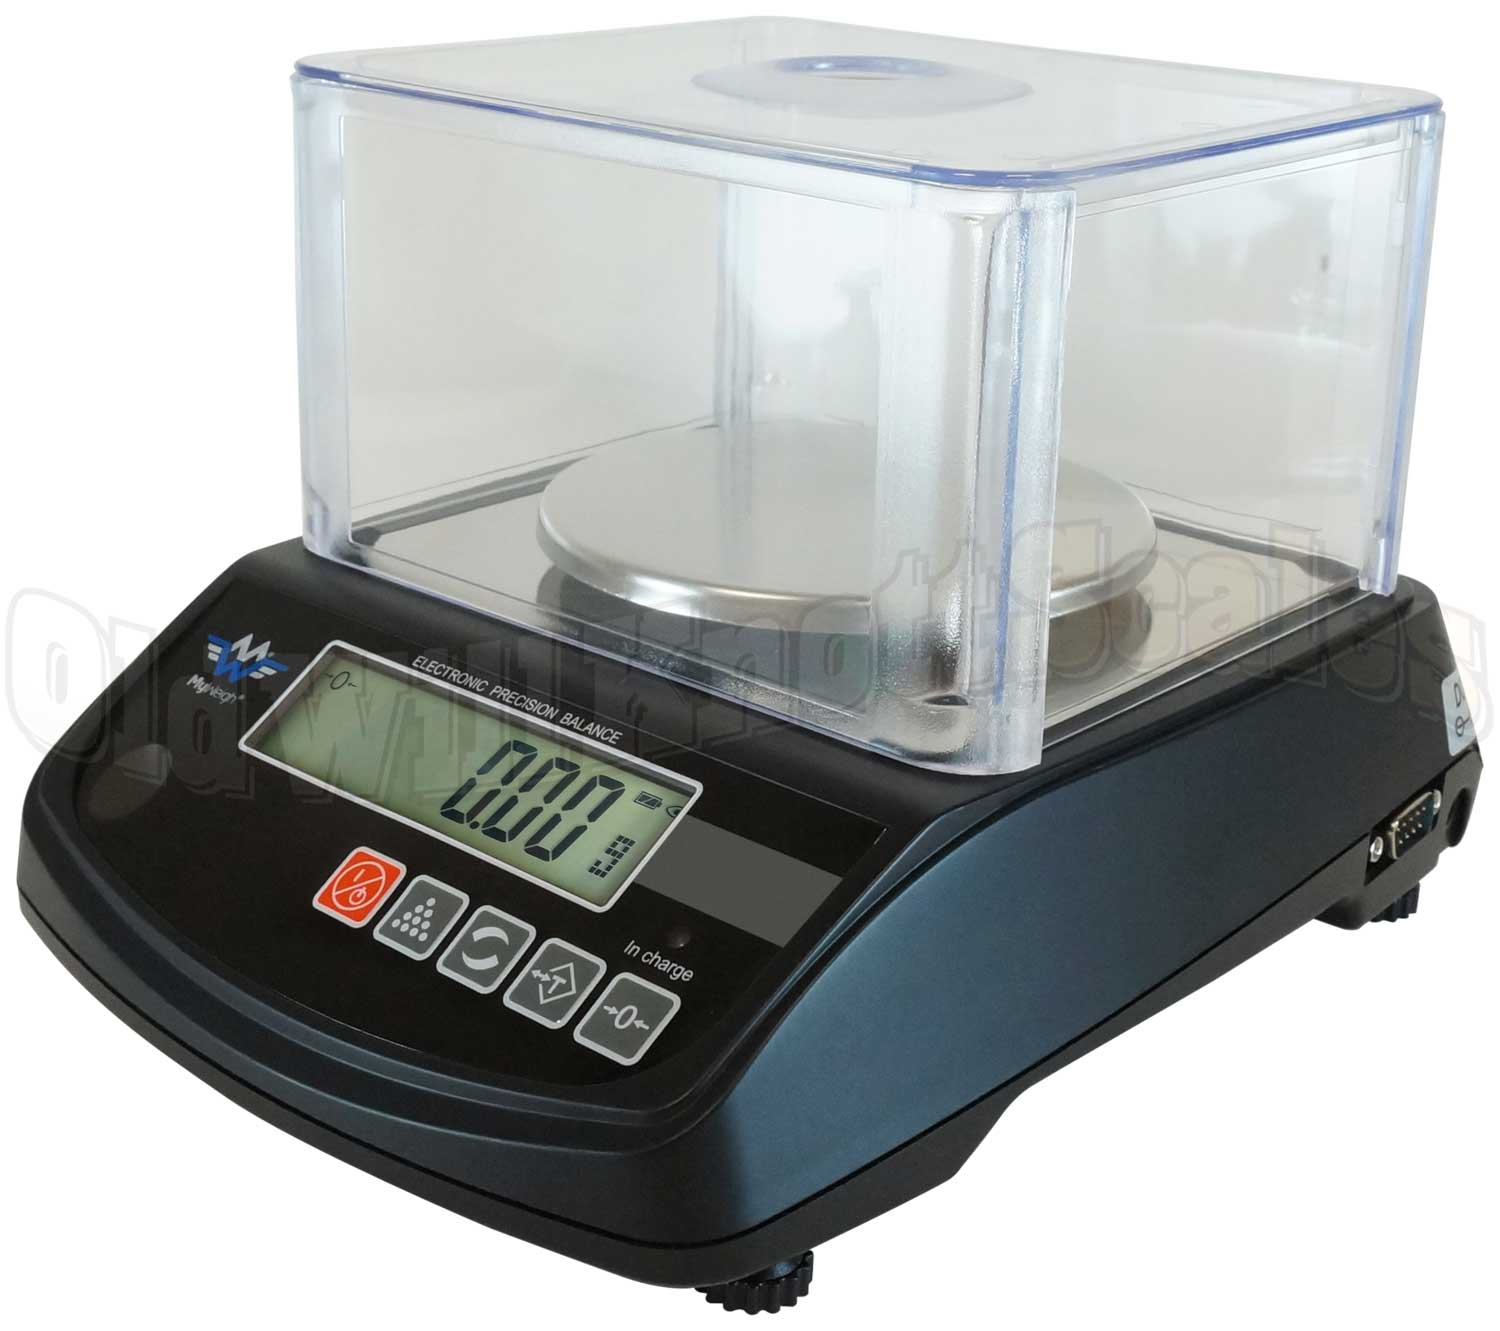 My Weigh - i601 - Right